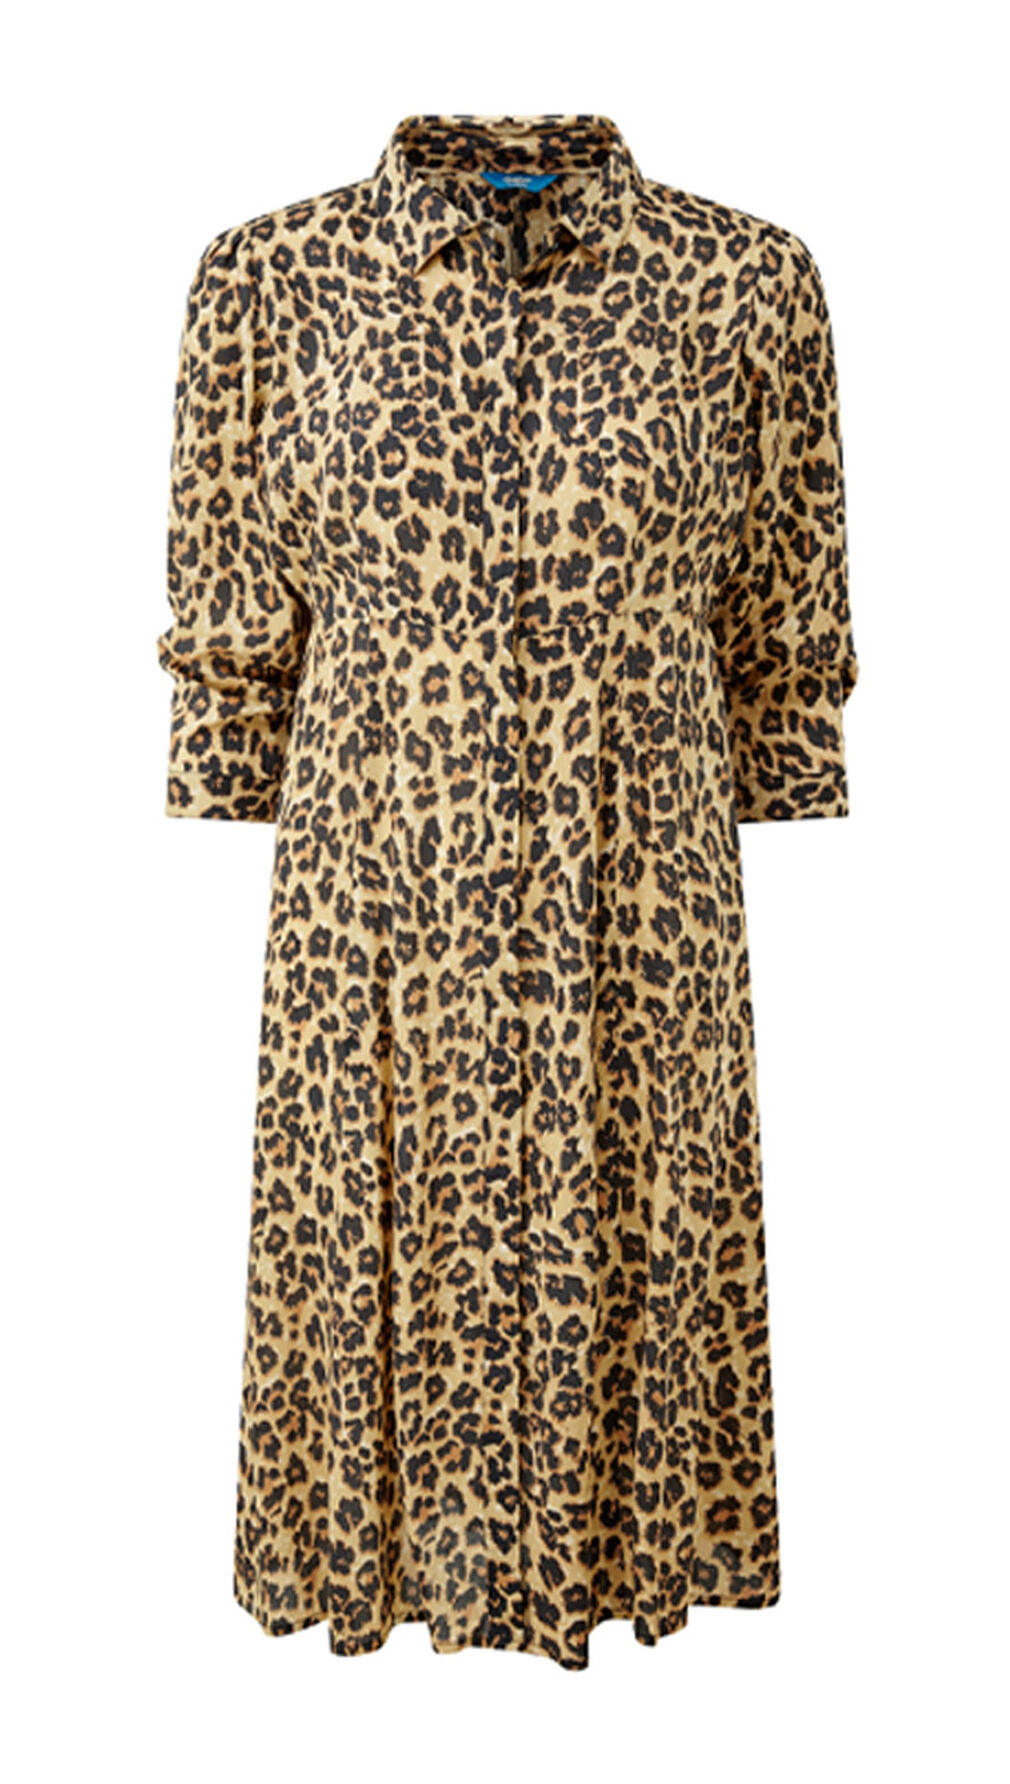 The Feelgood Coat | Frockstar Button-through Dress | By Cotton Traders